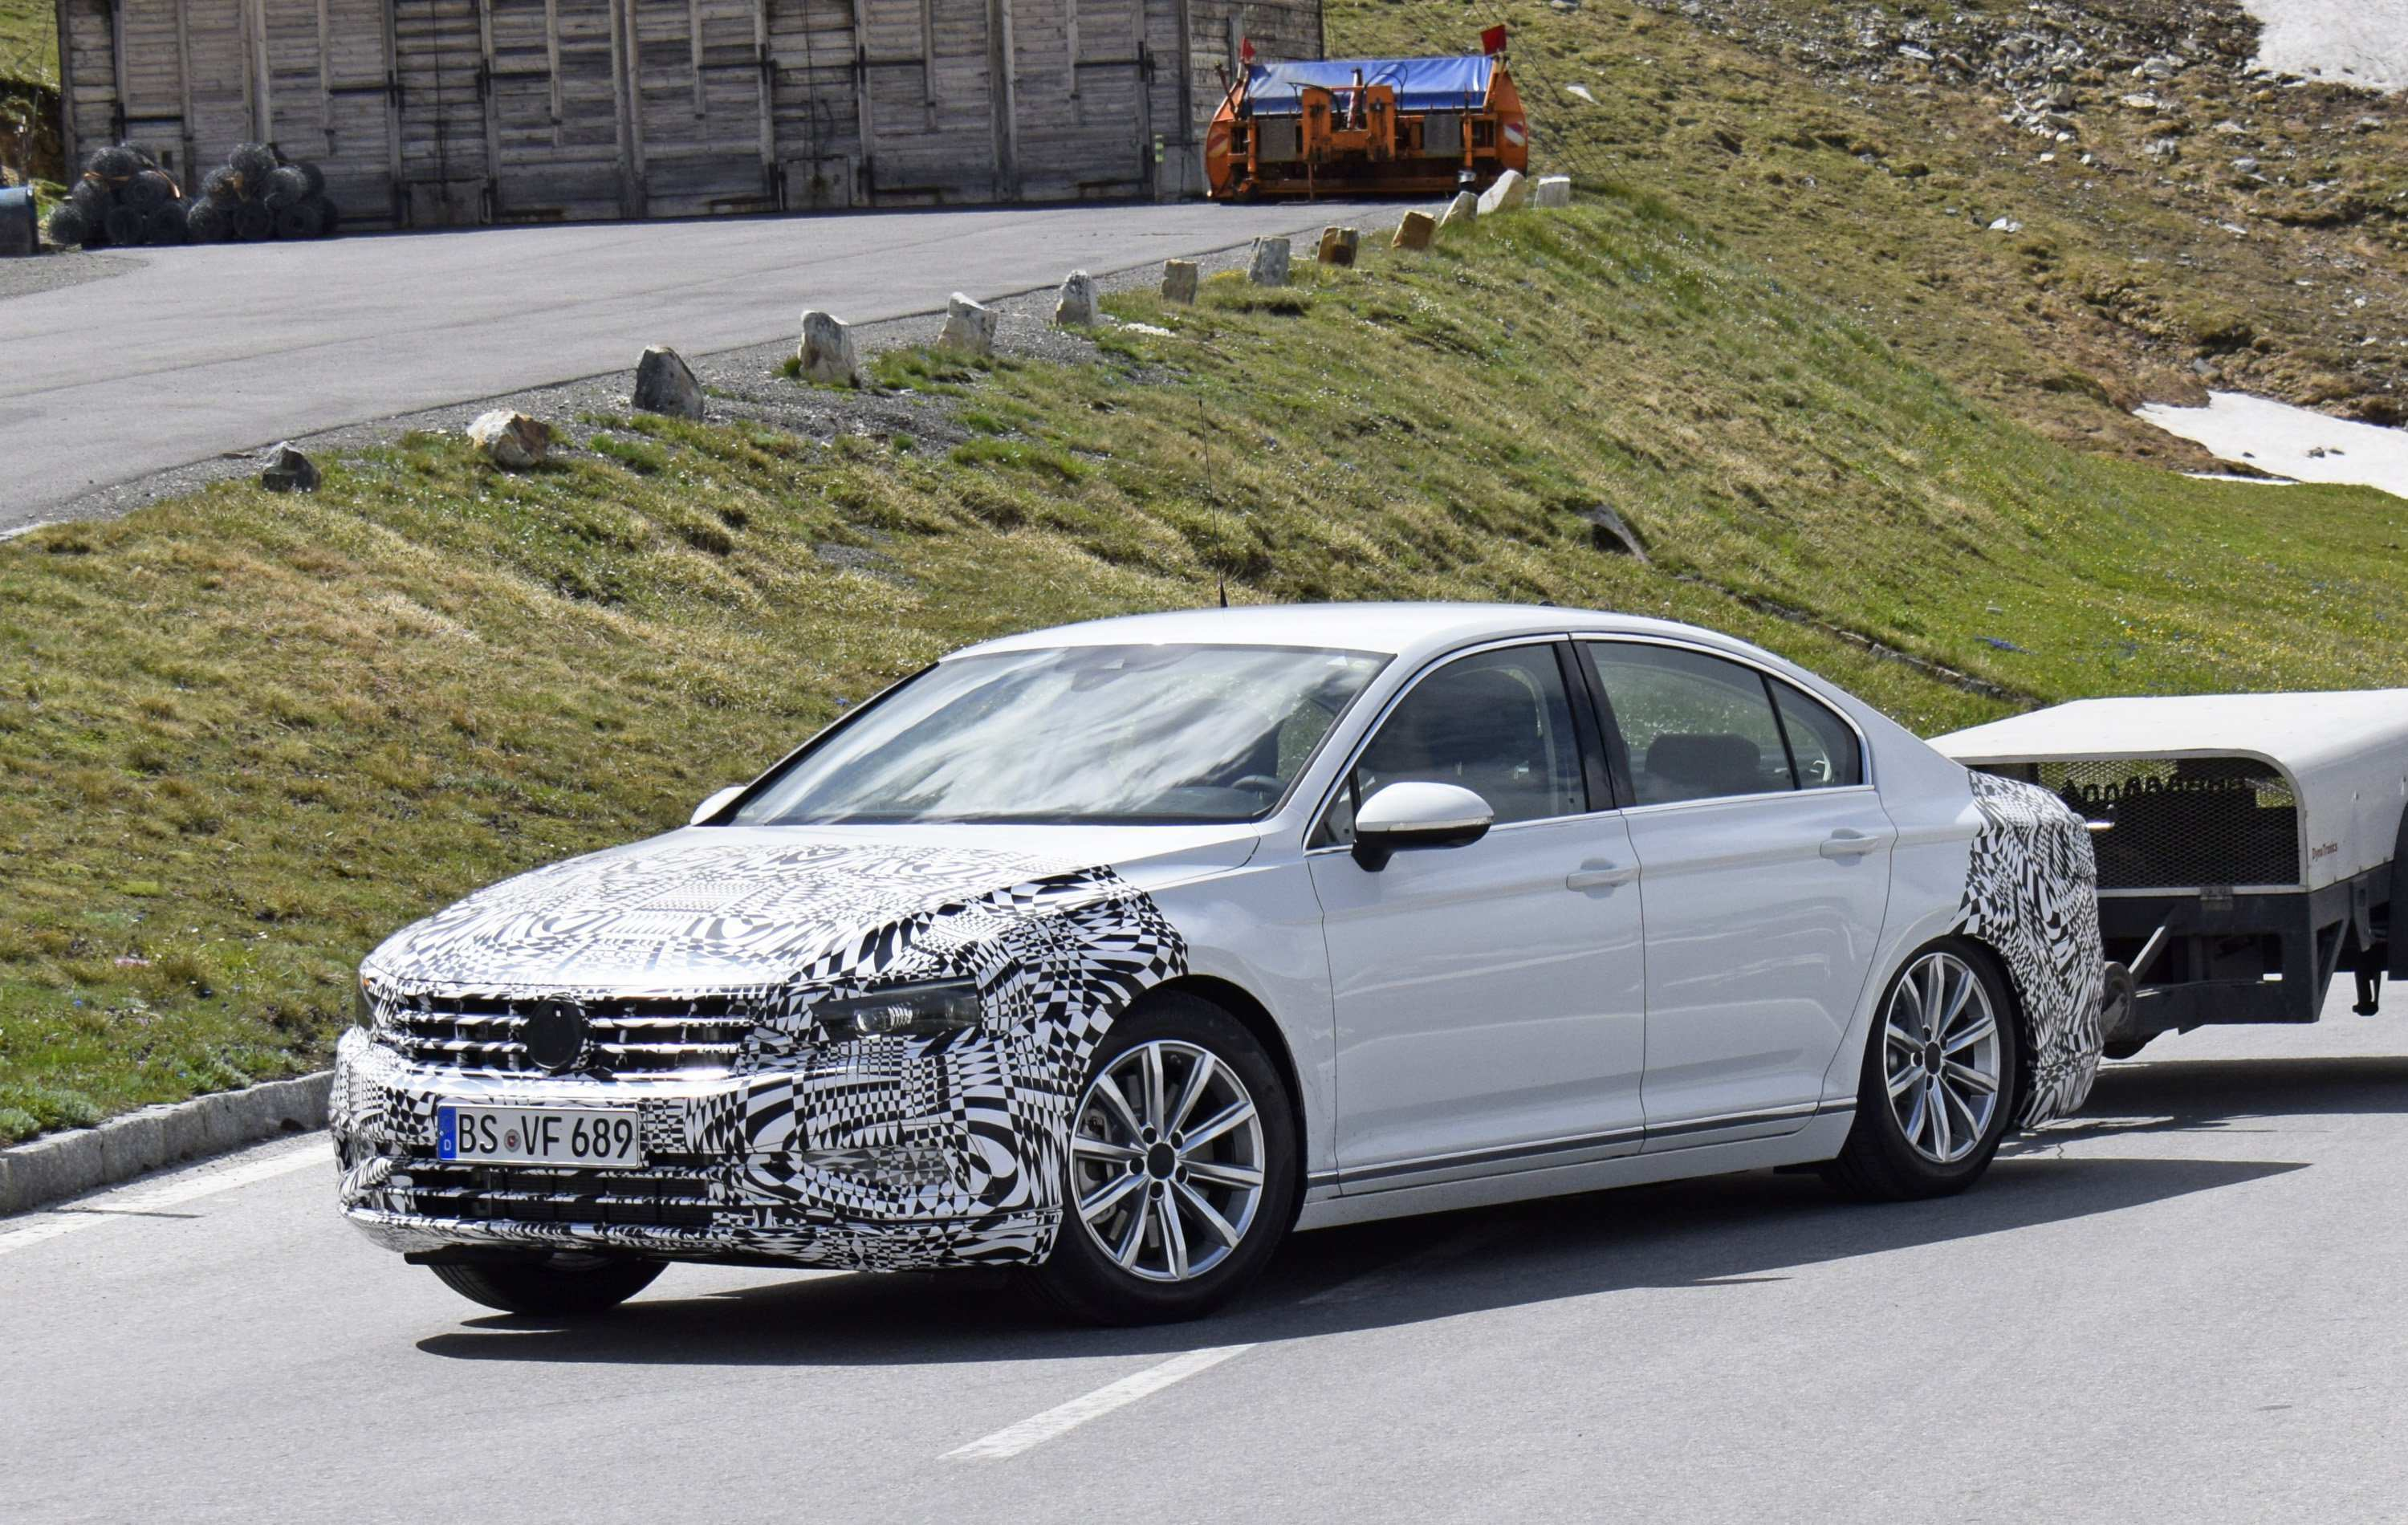 32 The Volkswagen Jetta 2019 Used Spy Shoot Images with Volkswagen Jetta 2019 Used Spy Shoot